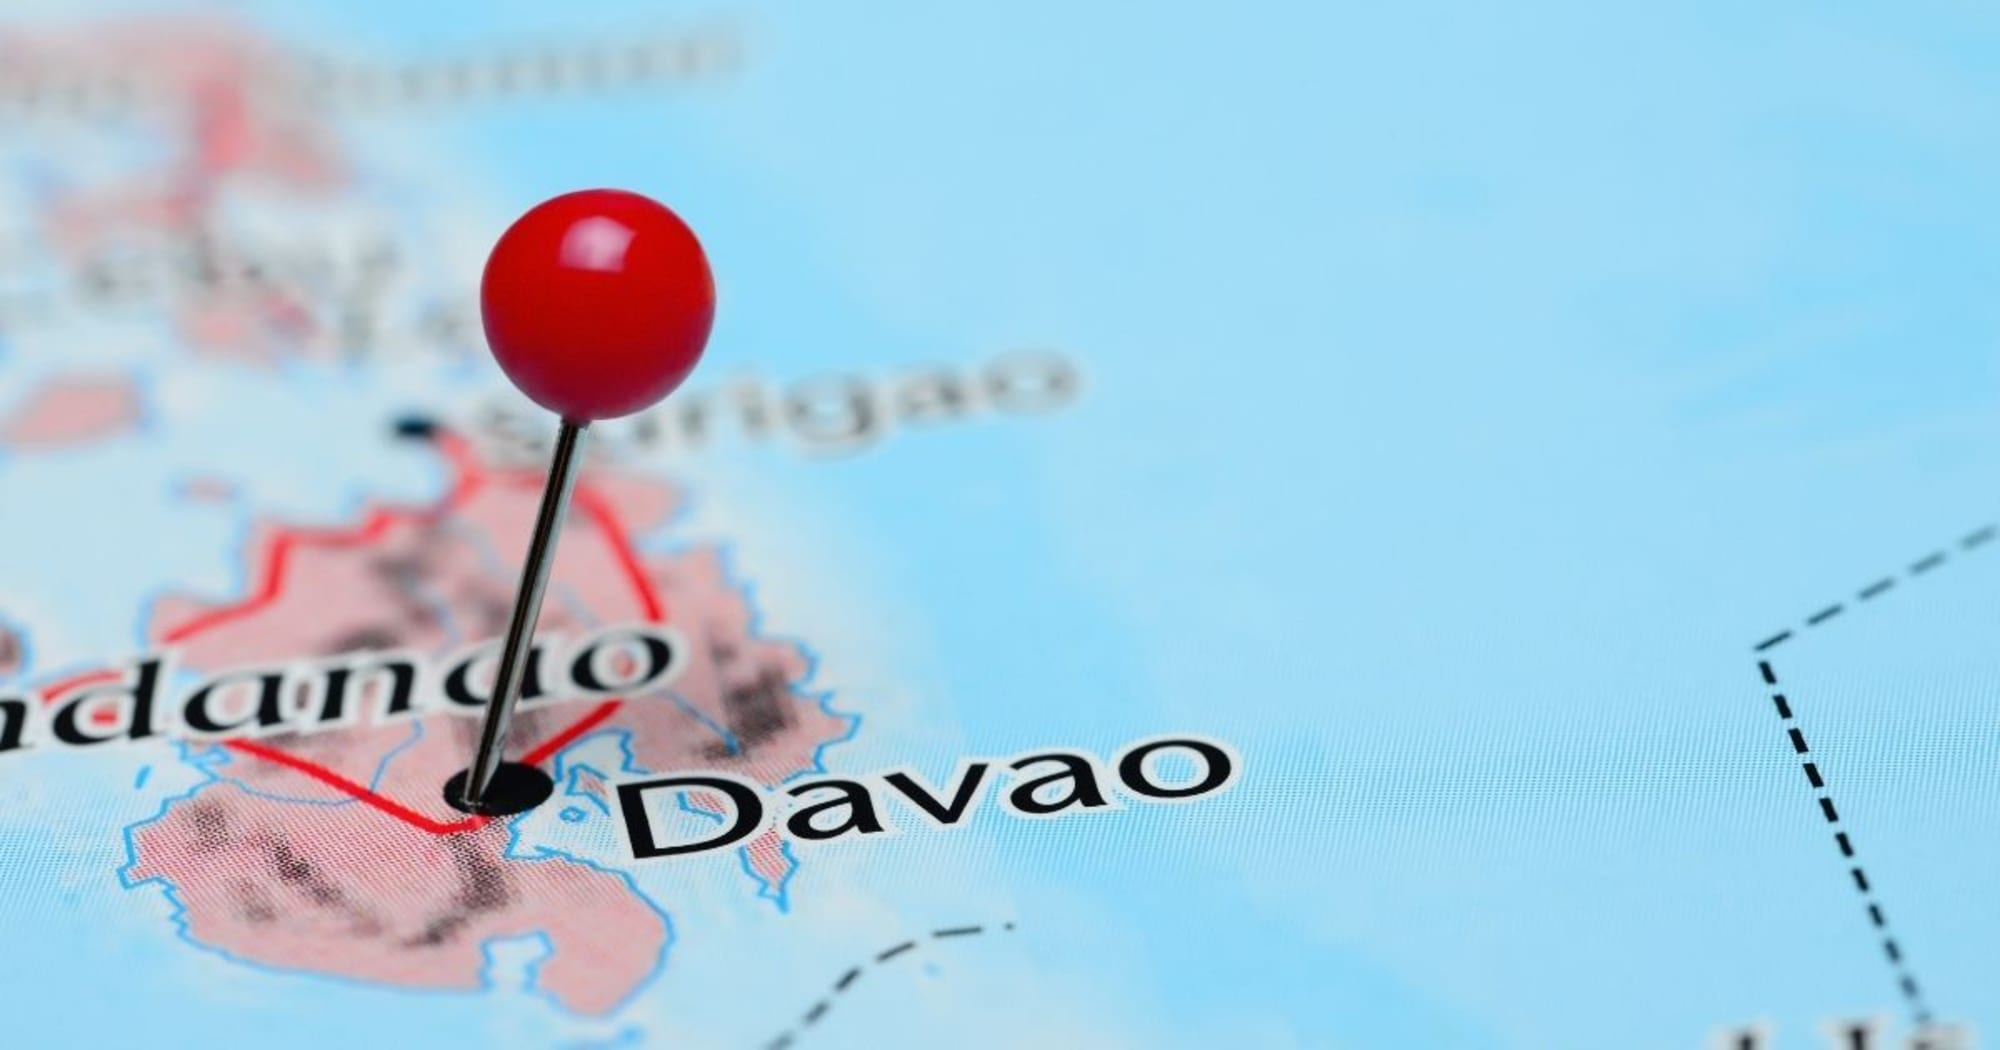 DOT dismayed over health and safety protocols violation of establishment in Davao City